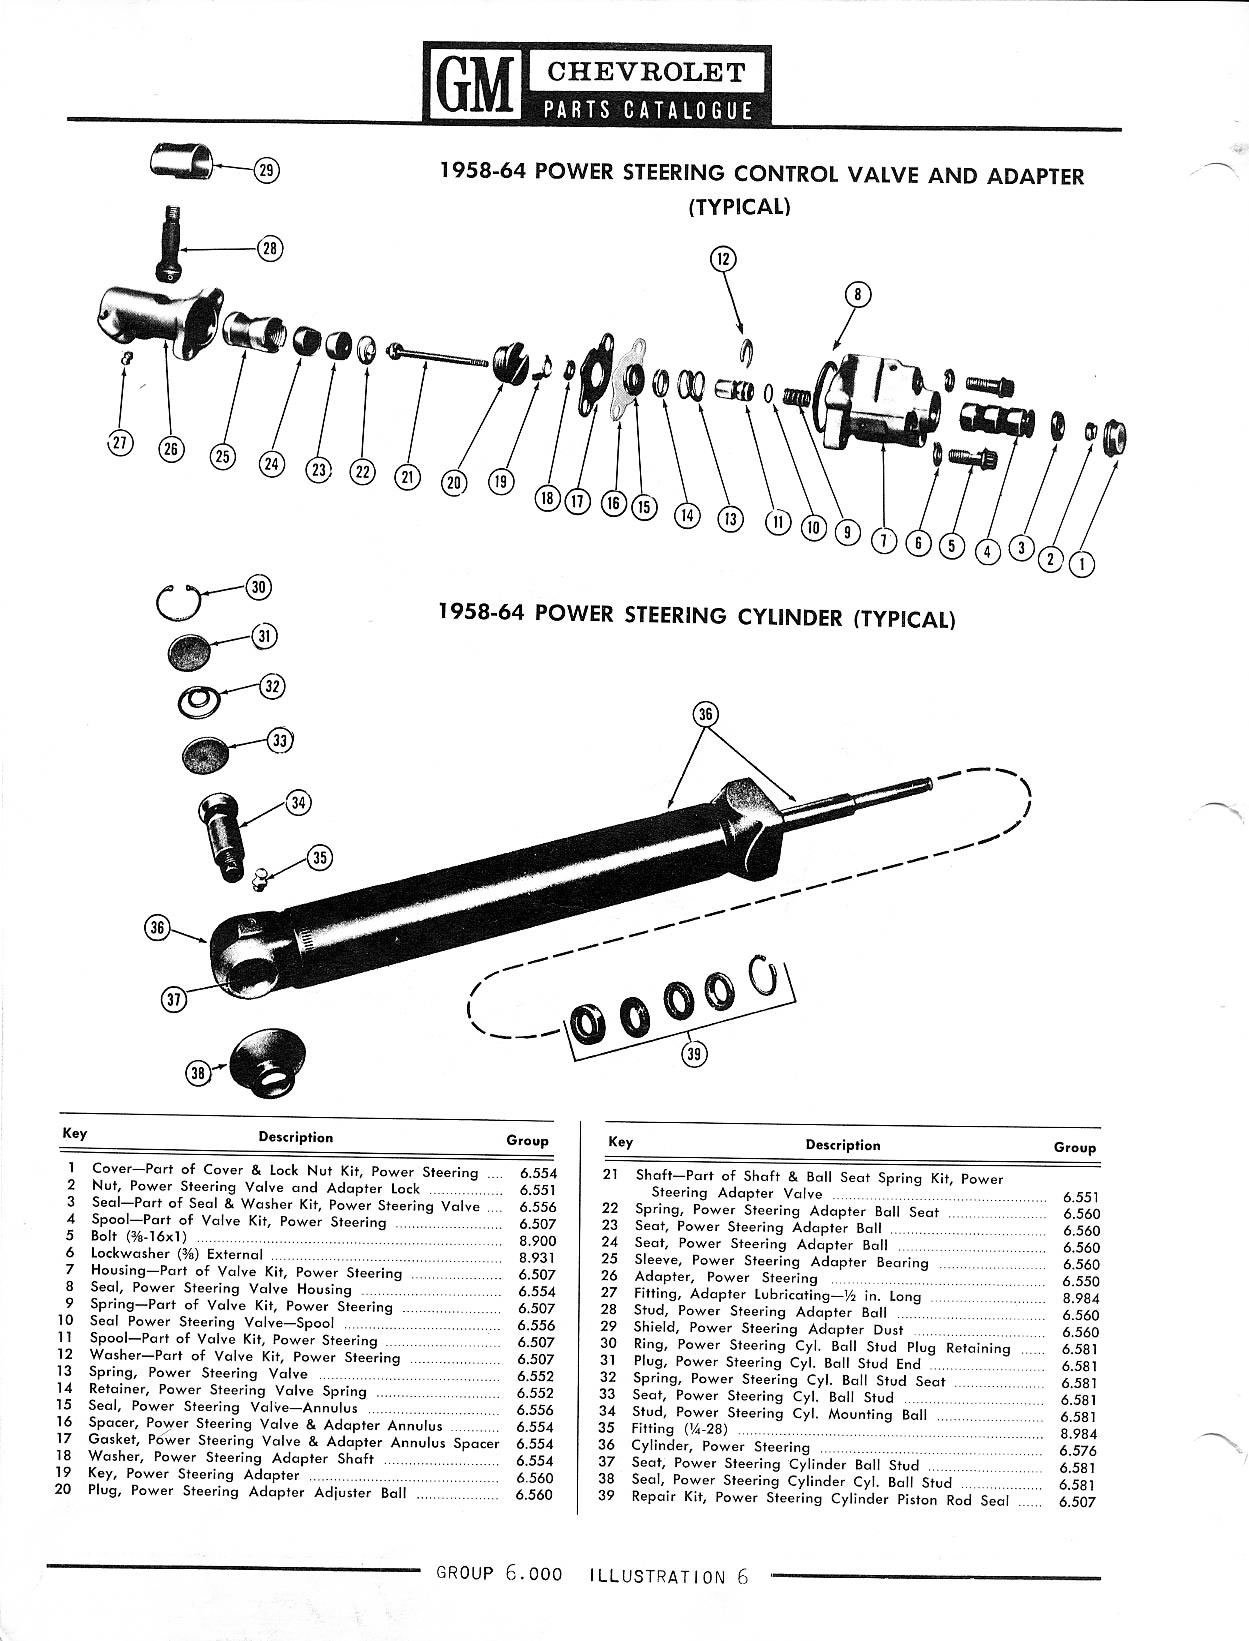 1967 impala horn diagram  1967  get free image about wiring diagram